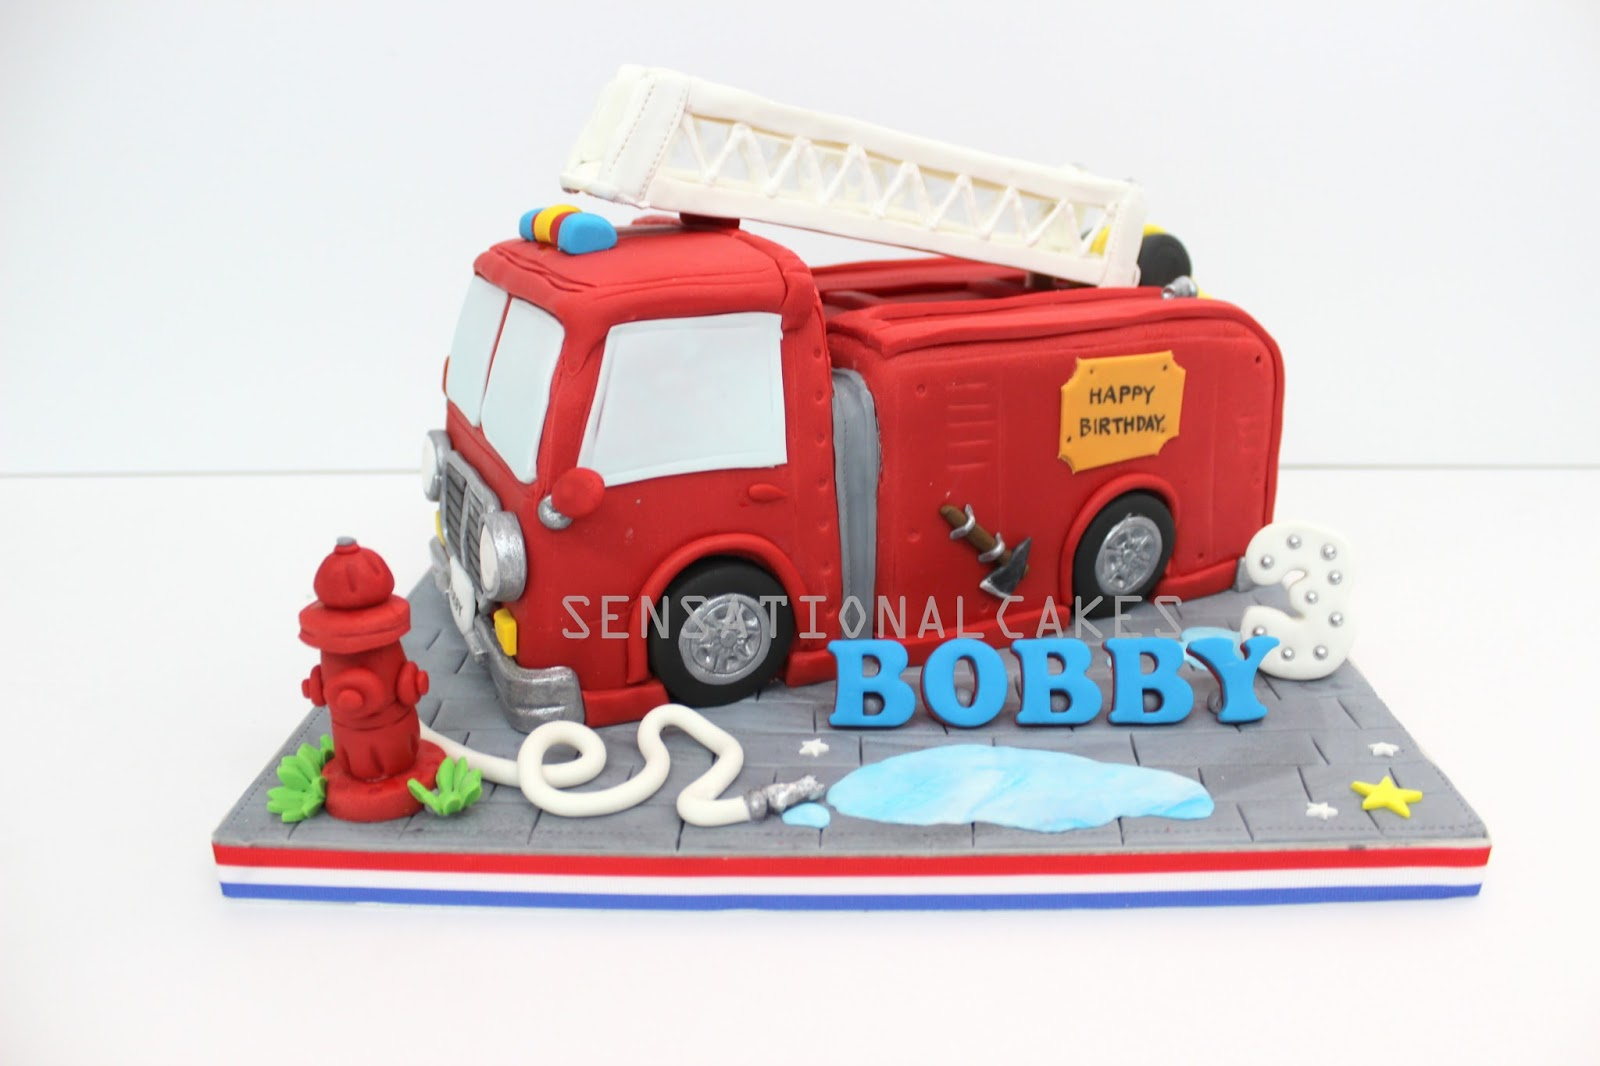 The Sensational Cakes FIRE ENGINE CAKE SINGAPORE FIREMAN CAKE